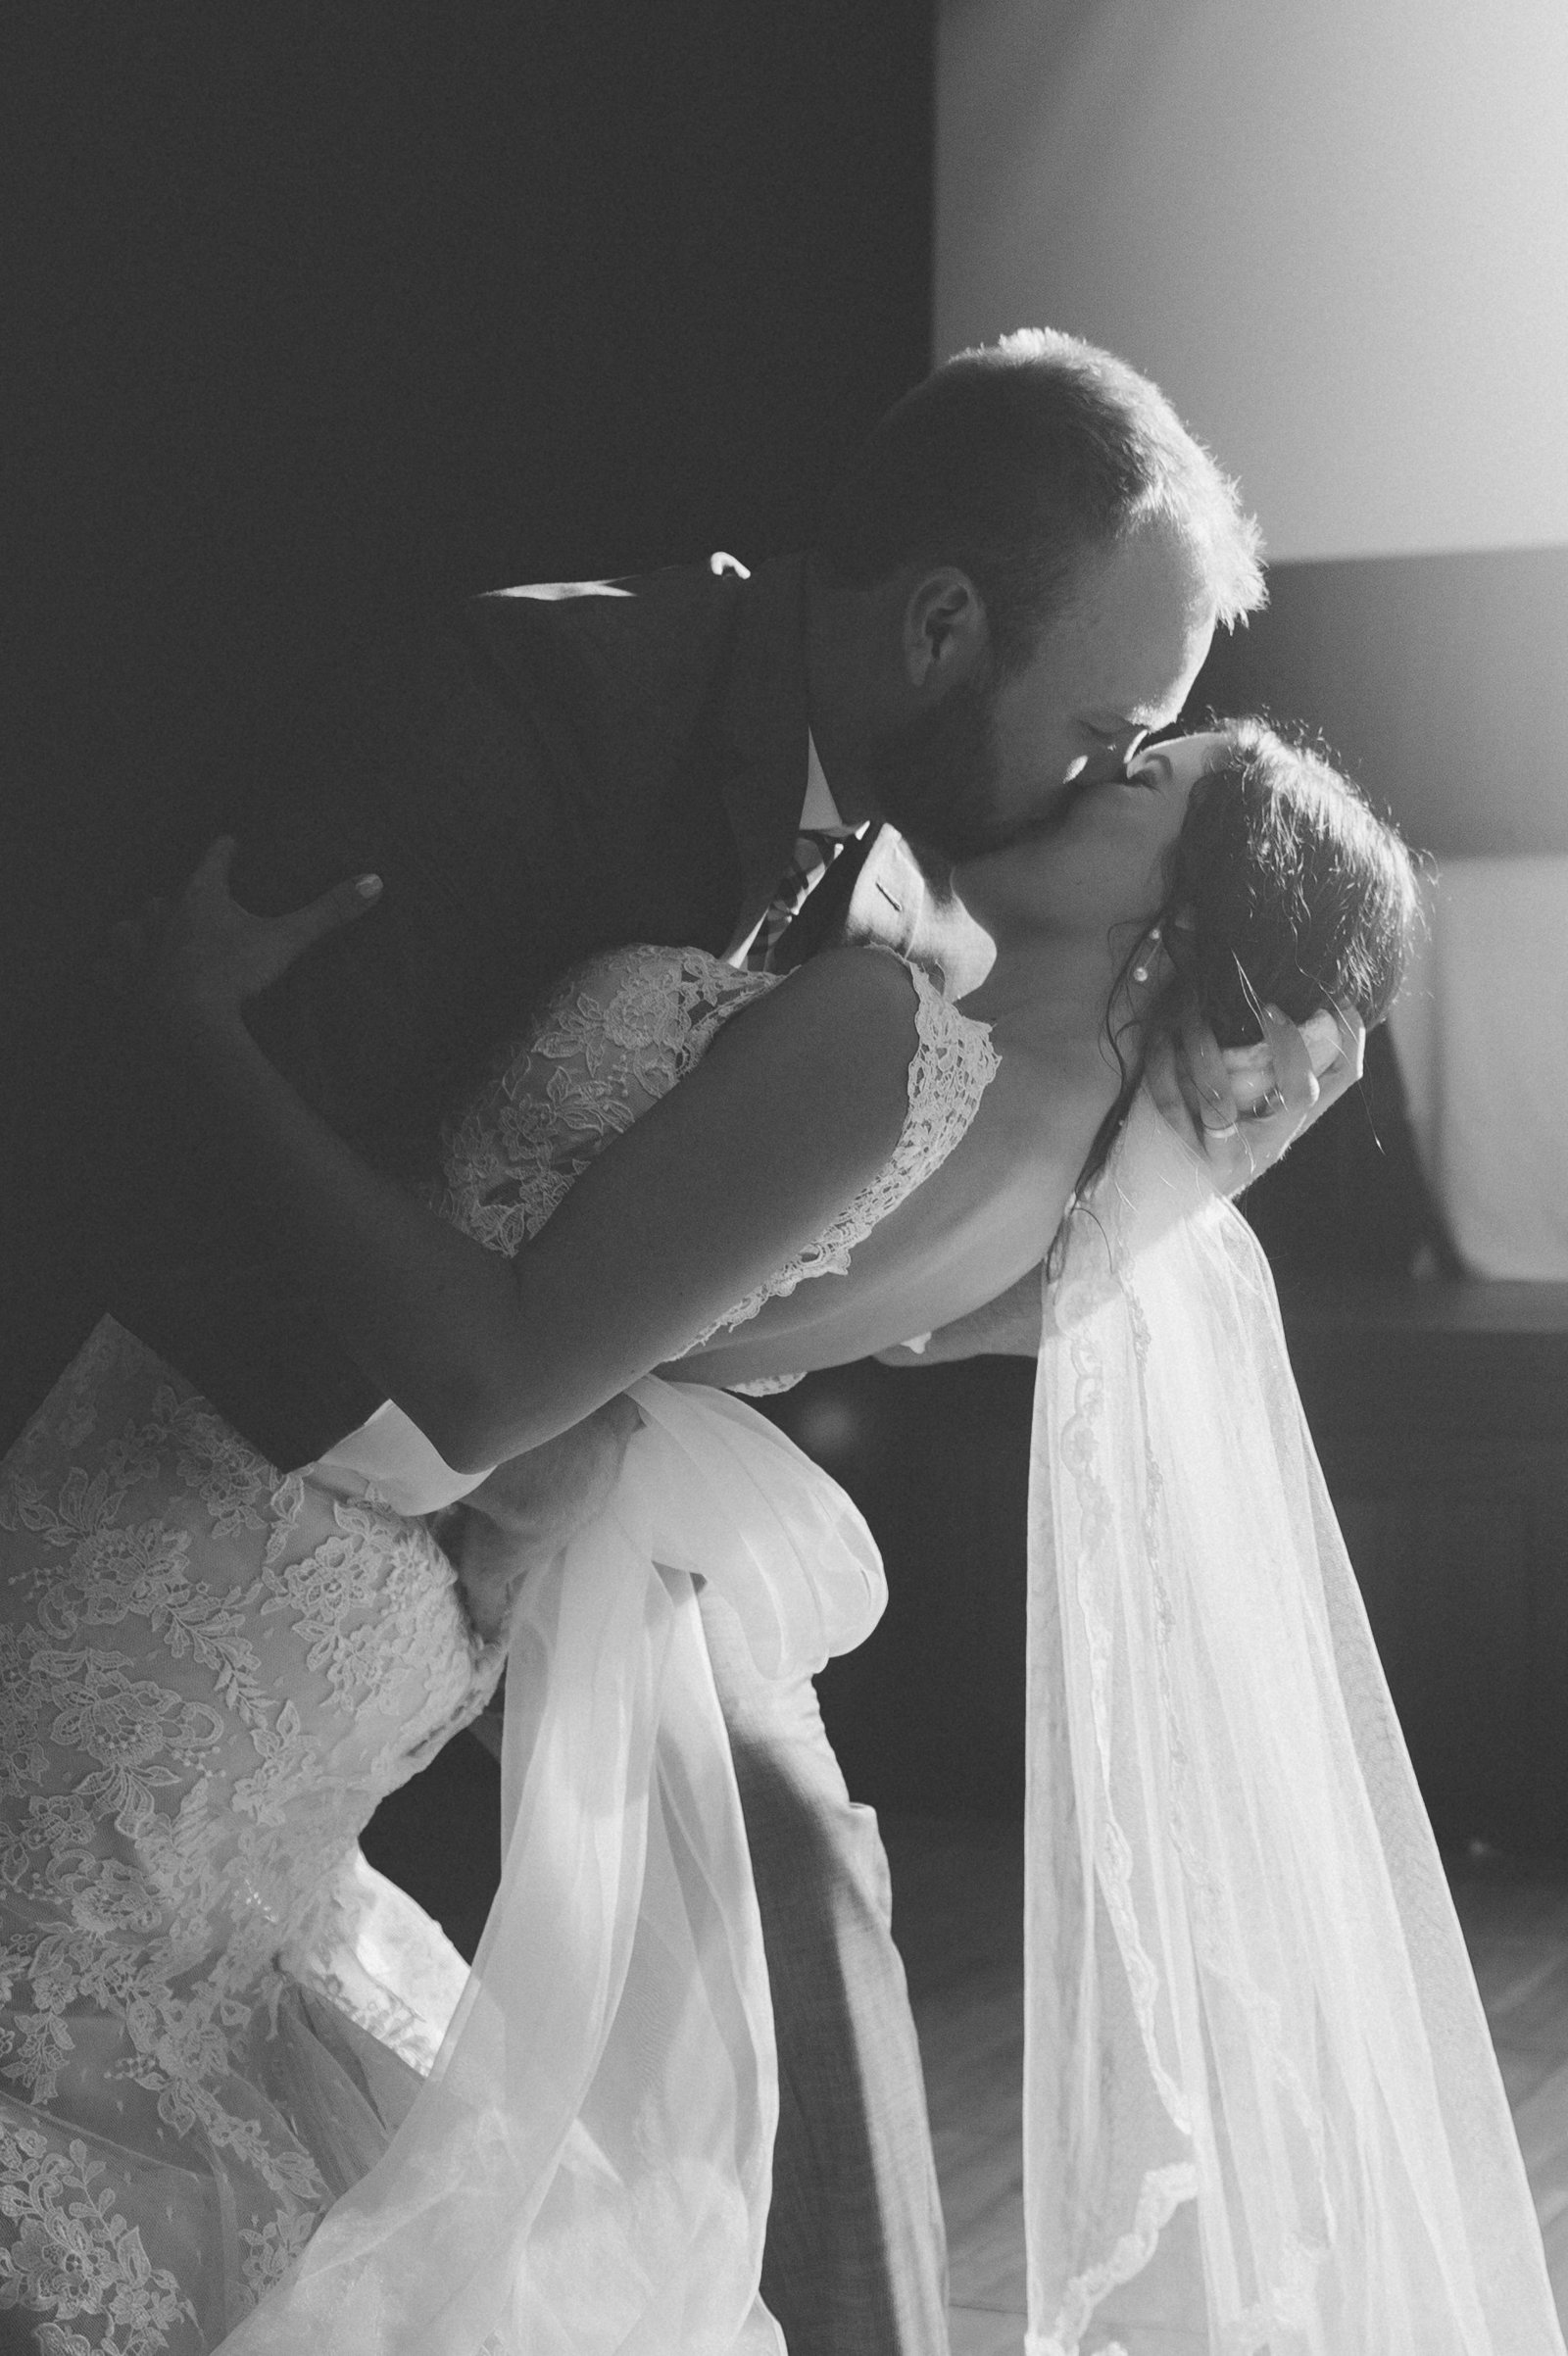 Artistic-Wedding-Photographer-44